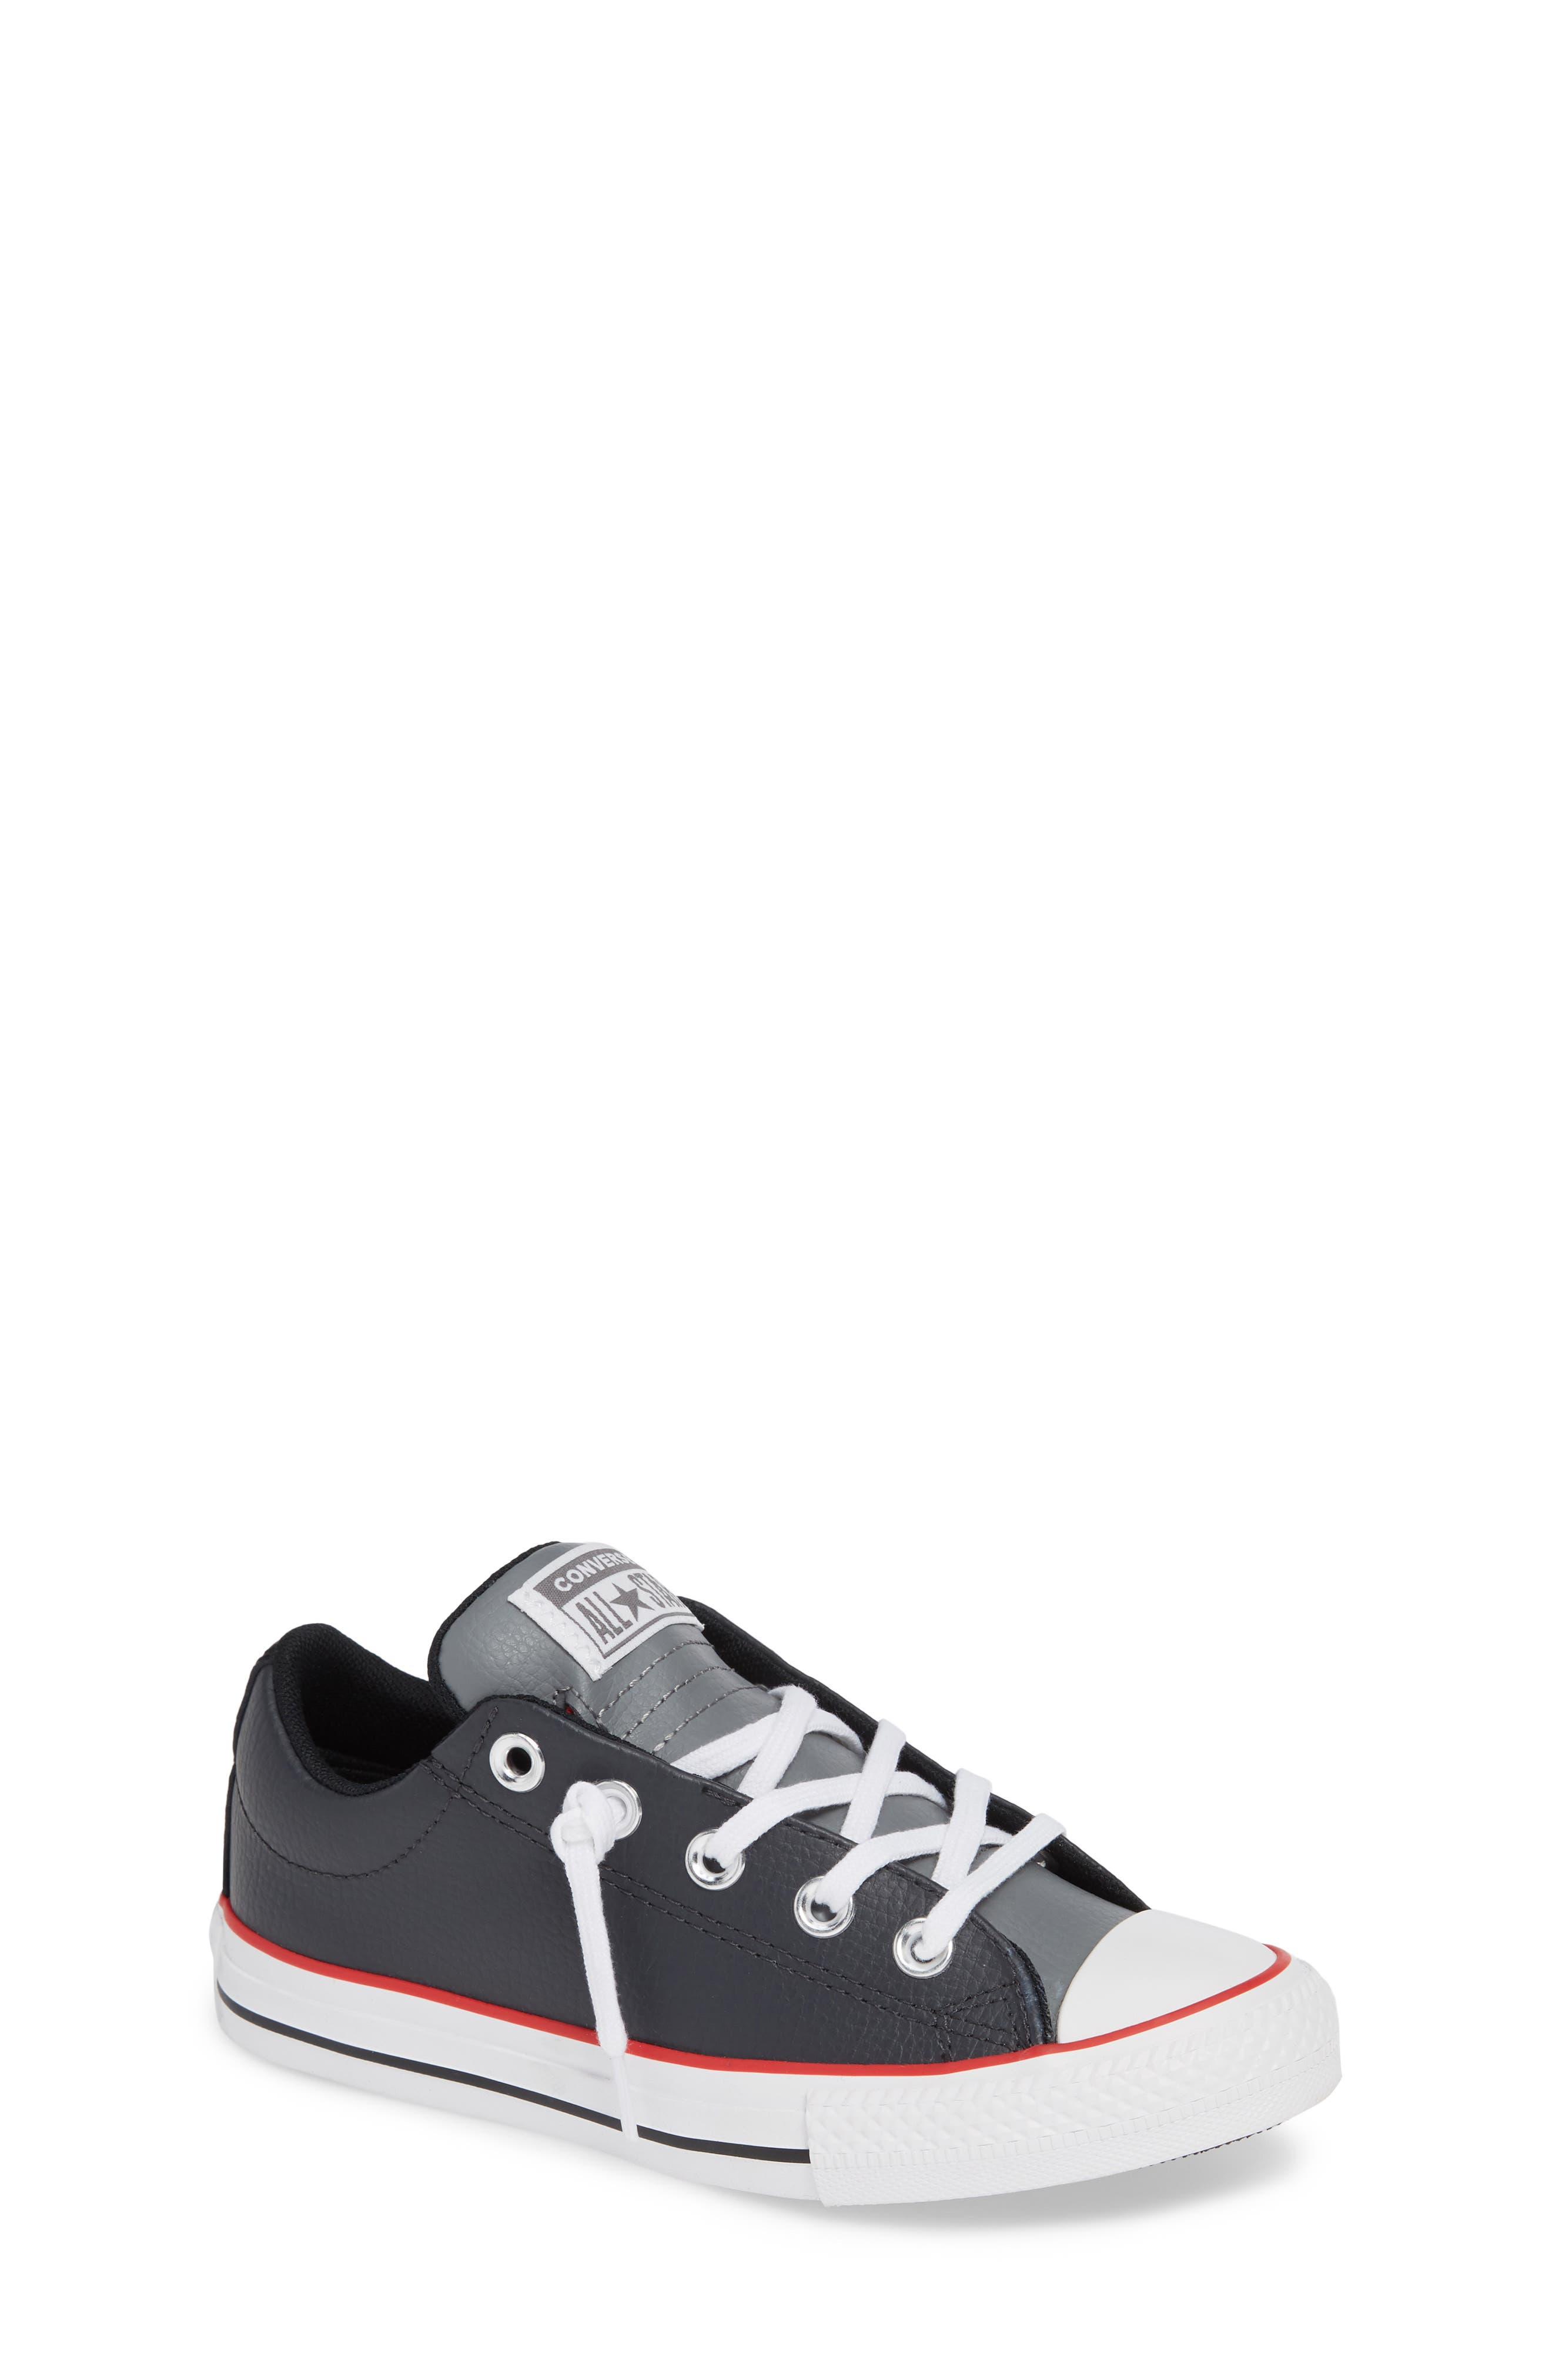 CONVERSE Chuck Taylor<sup>®</sup> All Star<sup>®</sup> Collegiate Street Leather Slip-On Sneaker, Main, color, ALMOST BLACK